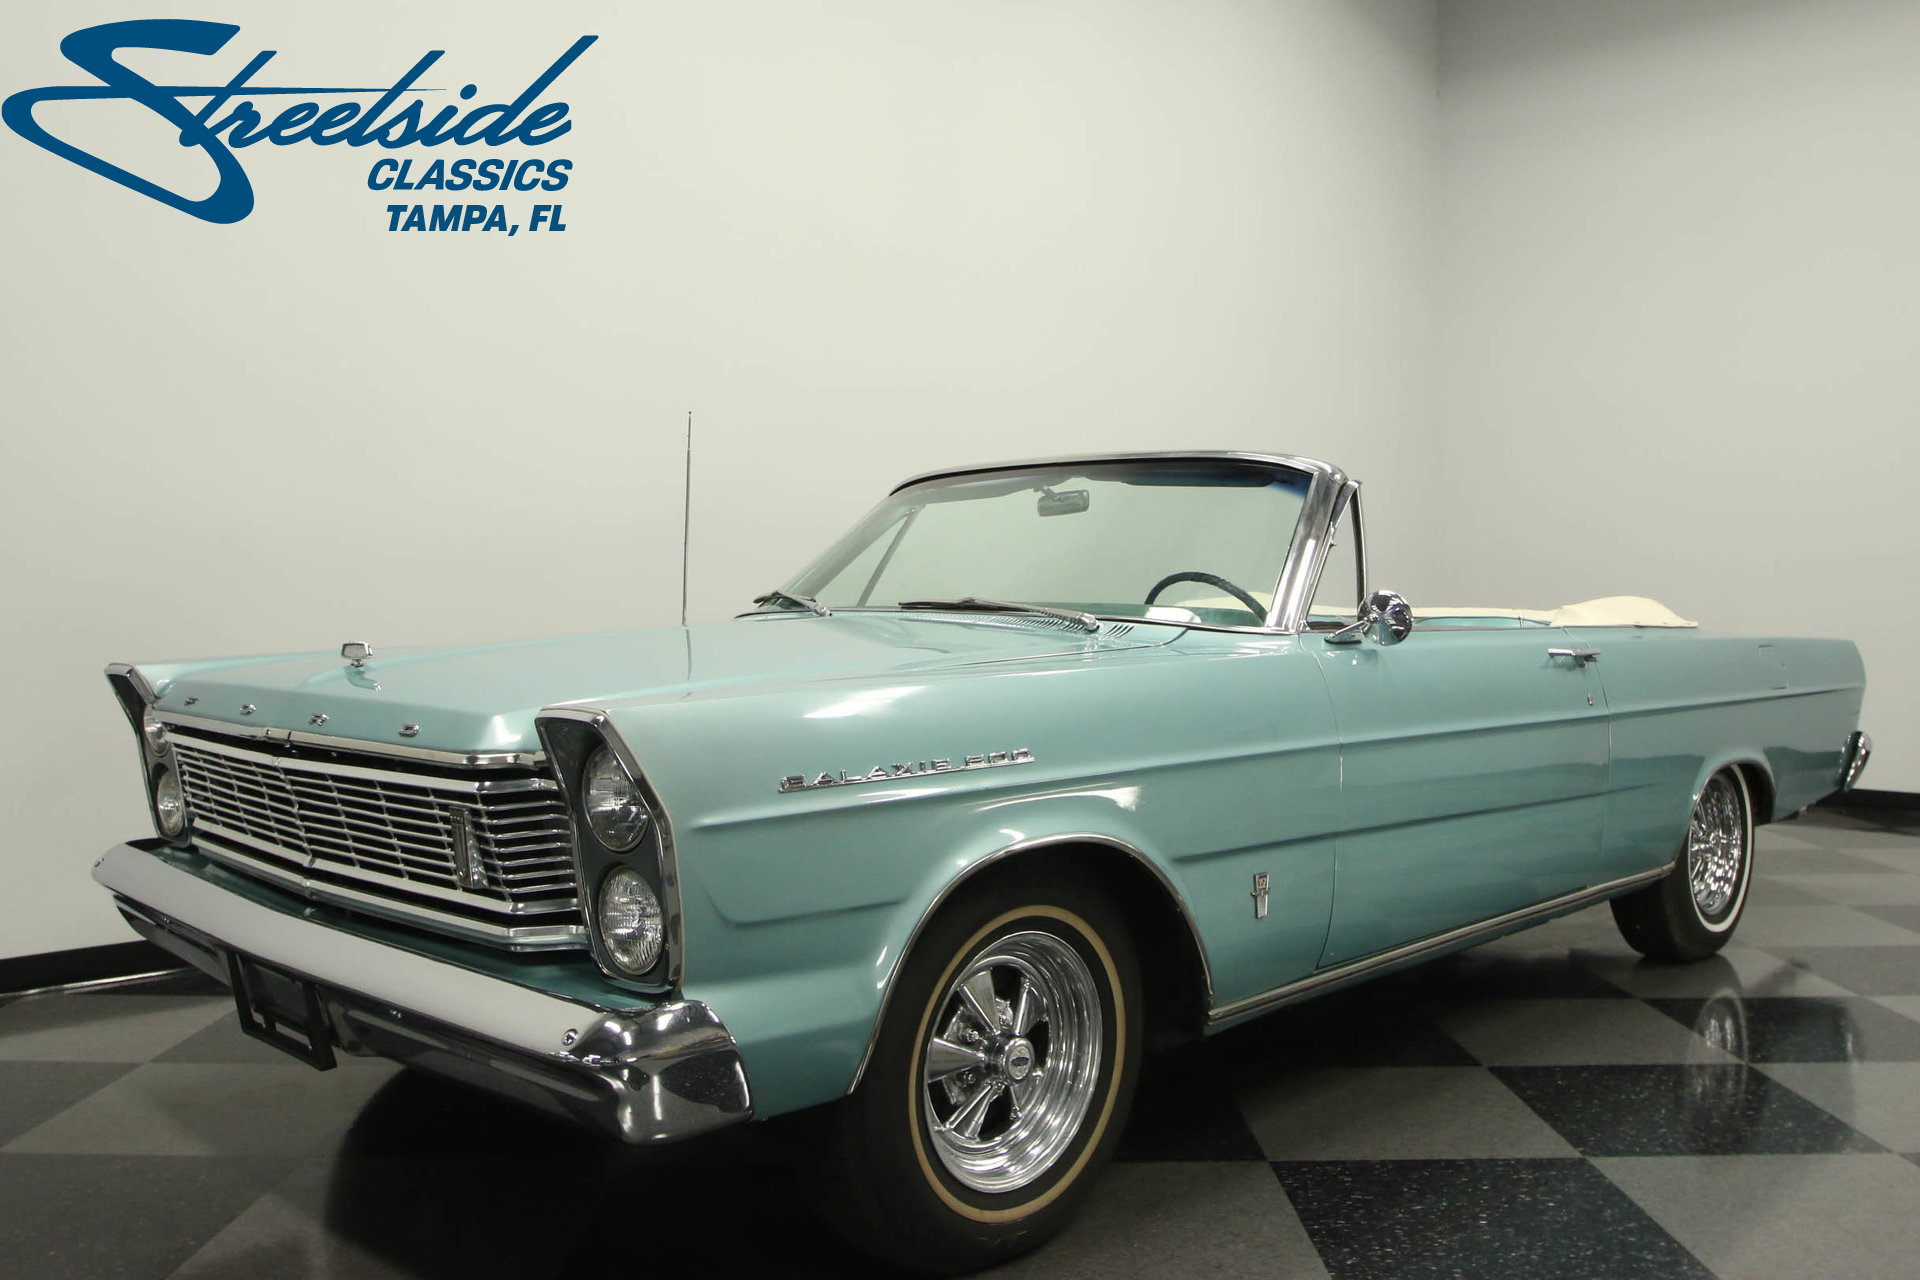 For Sale: 1965 Ford Galaxie. Spincar view. Play Video